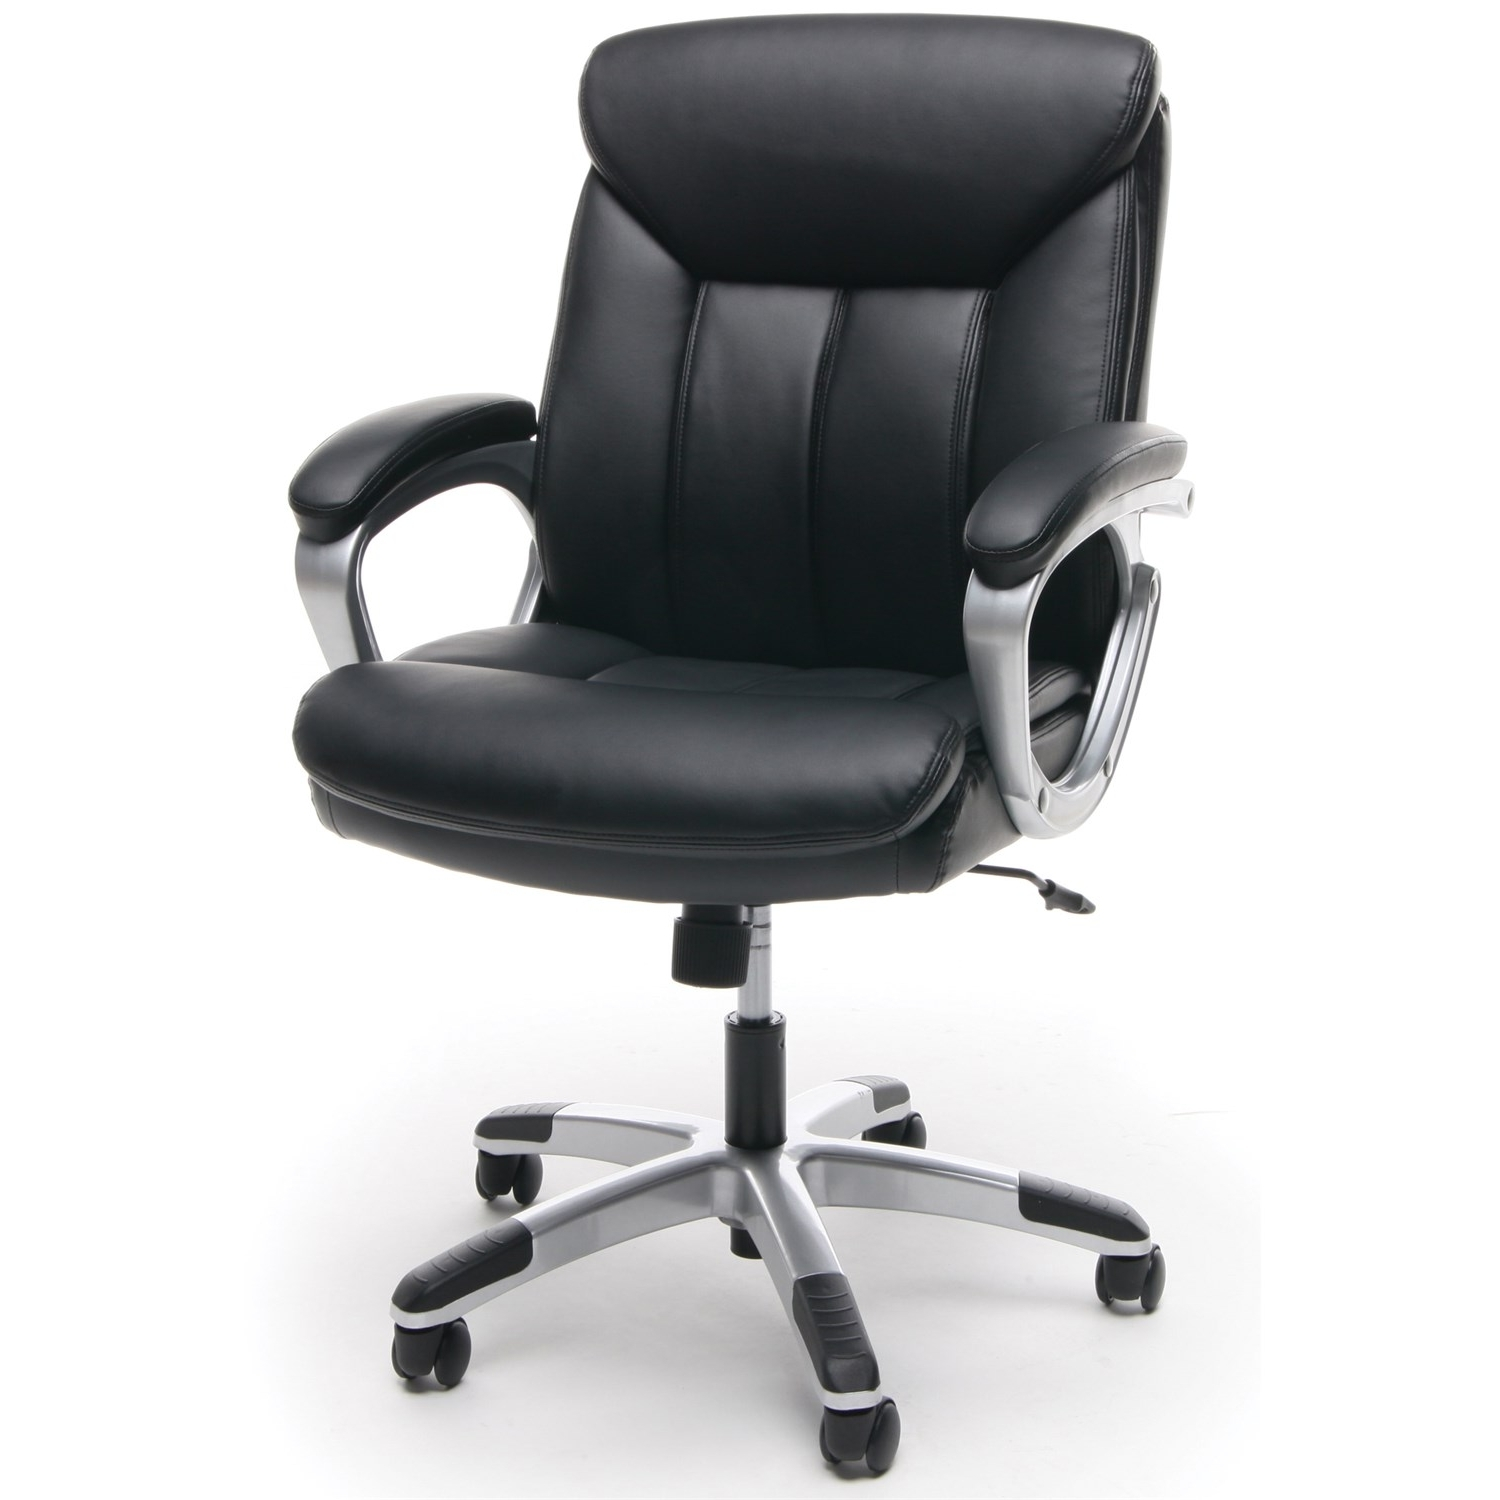 Ofm Ess 6020 Essentials Leather Executive Office Chair In Black Pertaining To Favorite Executive Office Chairs Without Arms (View 15 of 20)